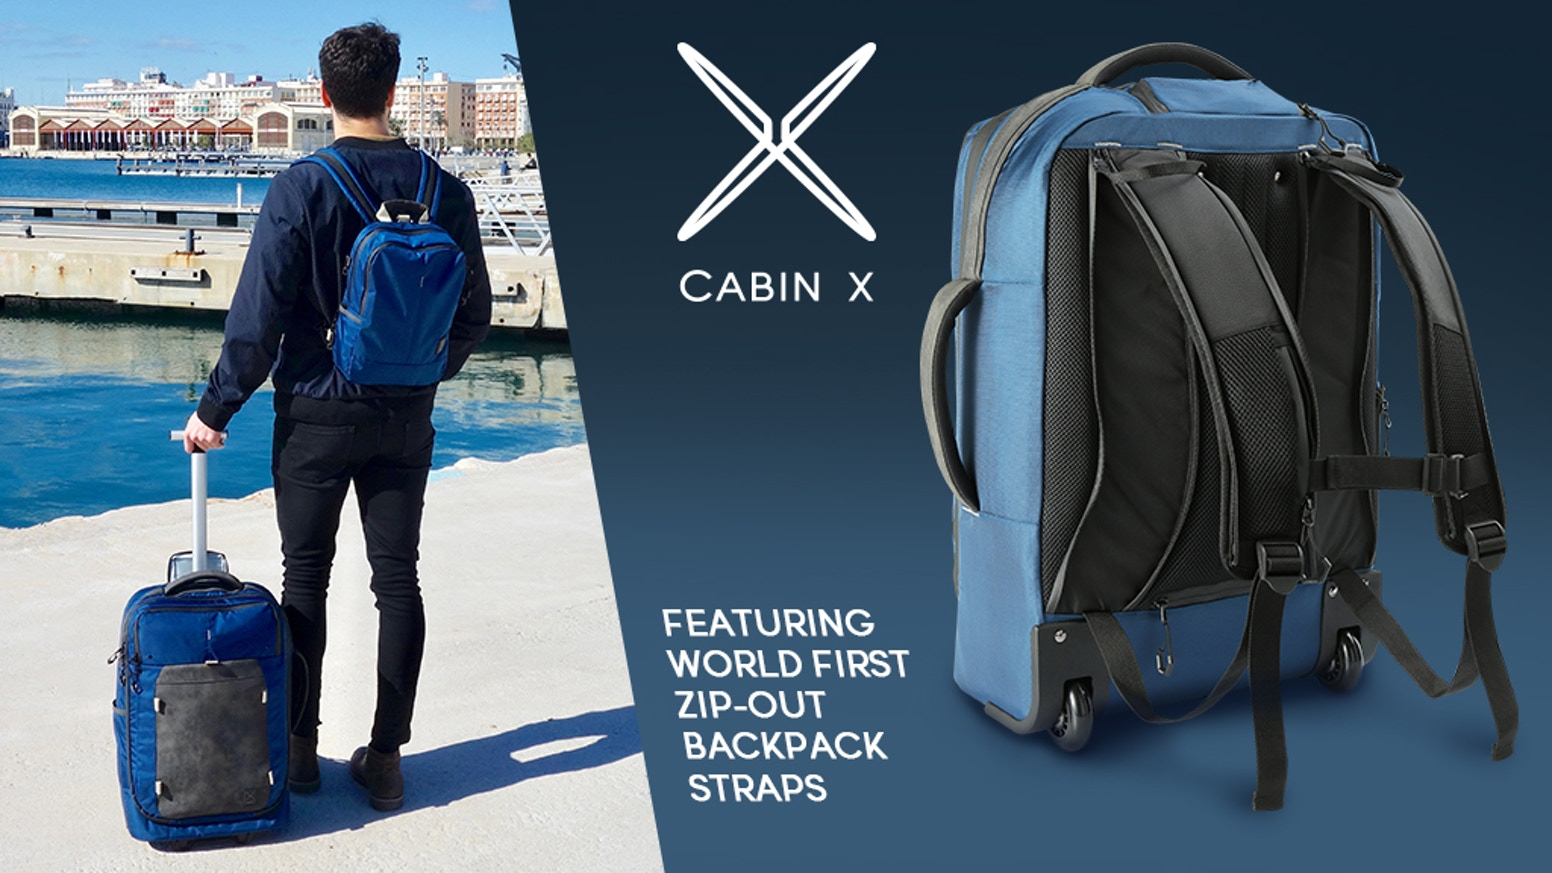 A Hybrid Carry-On case with unique Patent-pending zip-out backpack straps to let you switch easily between Trolley & Backpack modes.